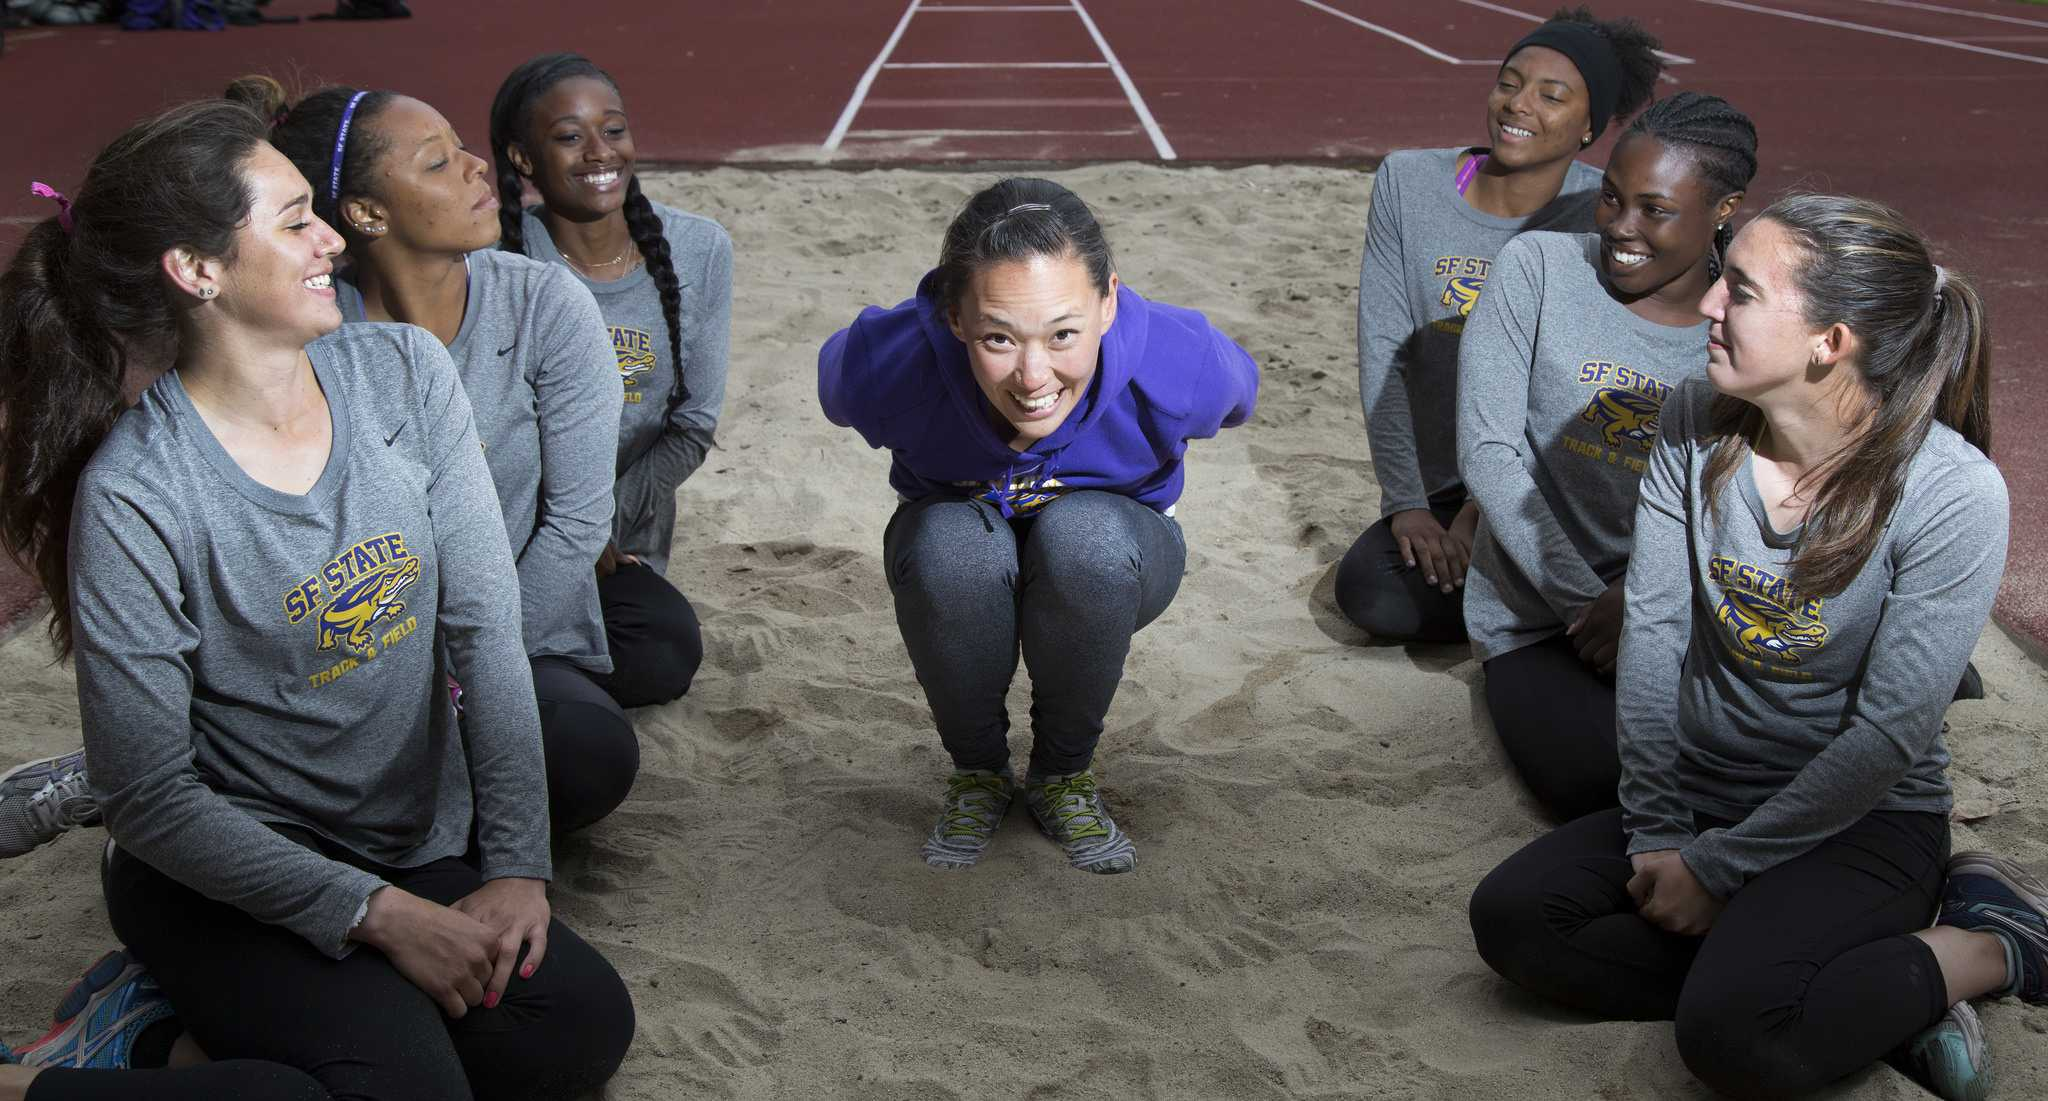 Marissa Chew, assistant coach for the women's long and triple jump athletes, jumps into the sand with her team beside her at Cox Stadium Tuesday, April 21.